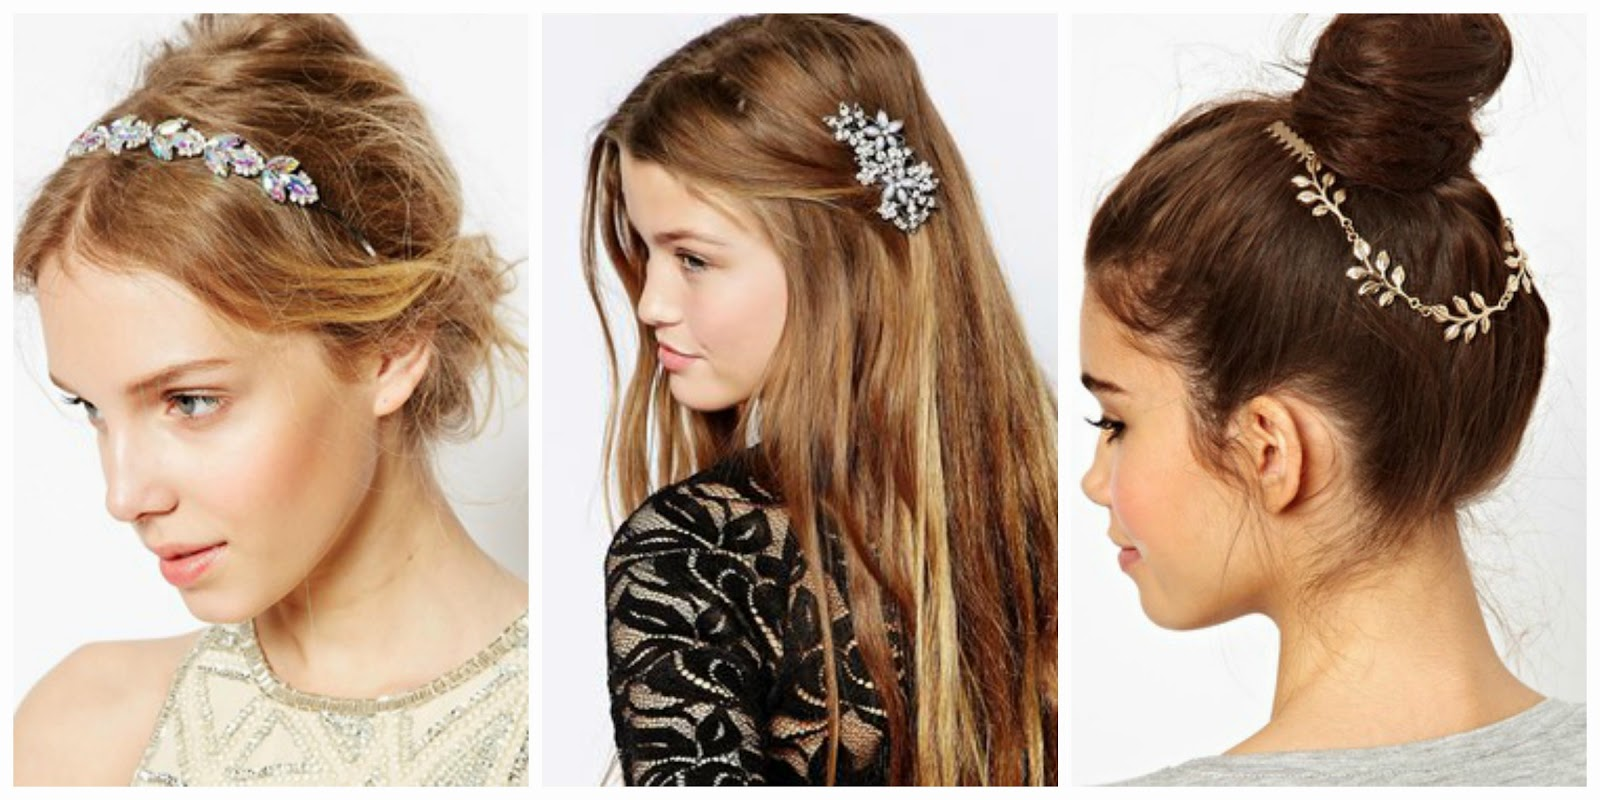 Hair Accessories For Wedding Guests Wedding Ideas